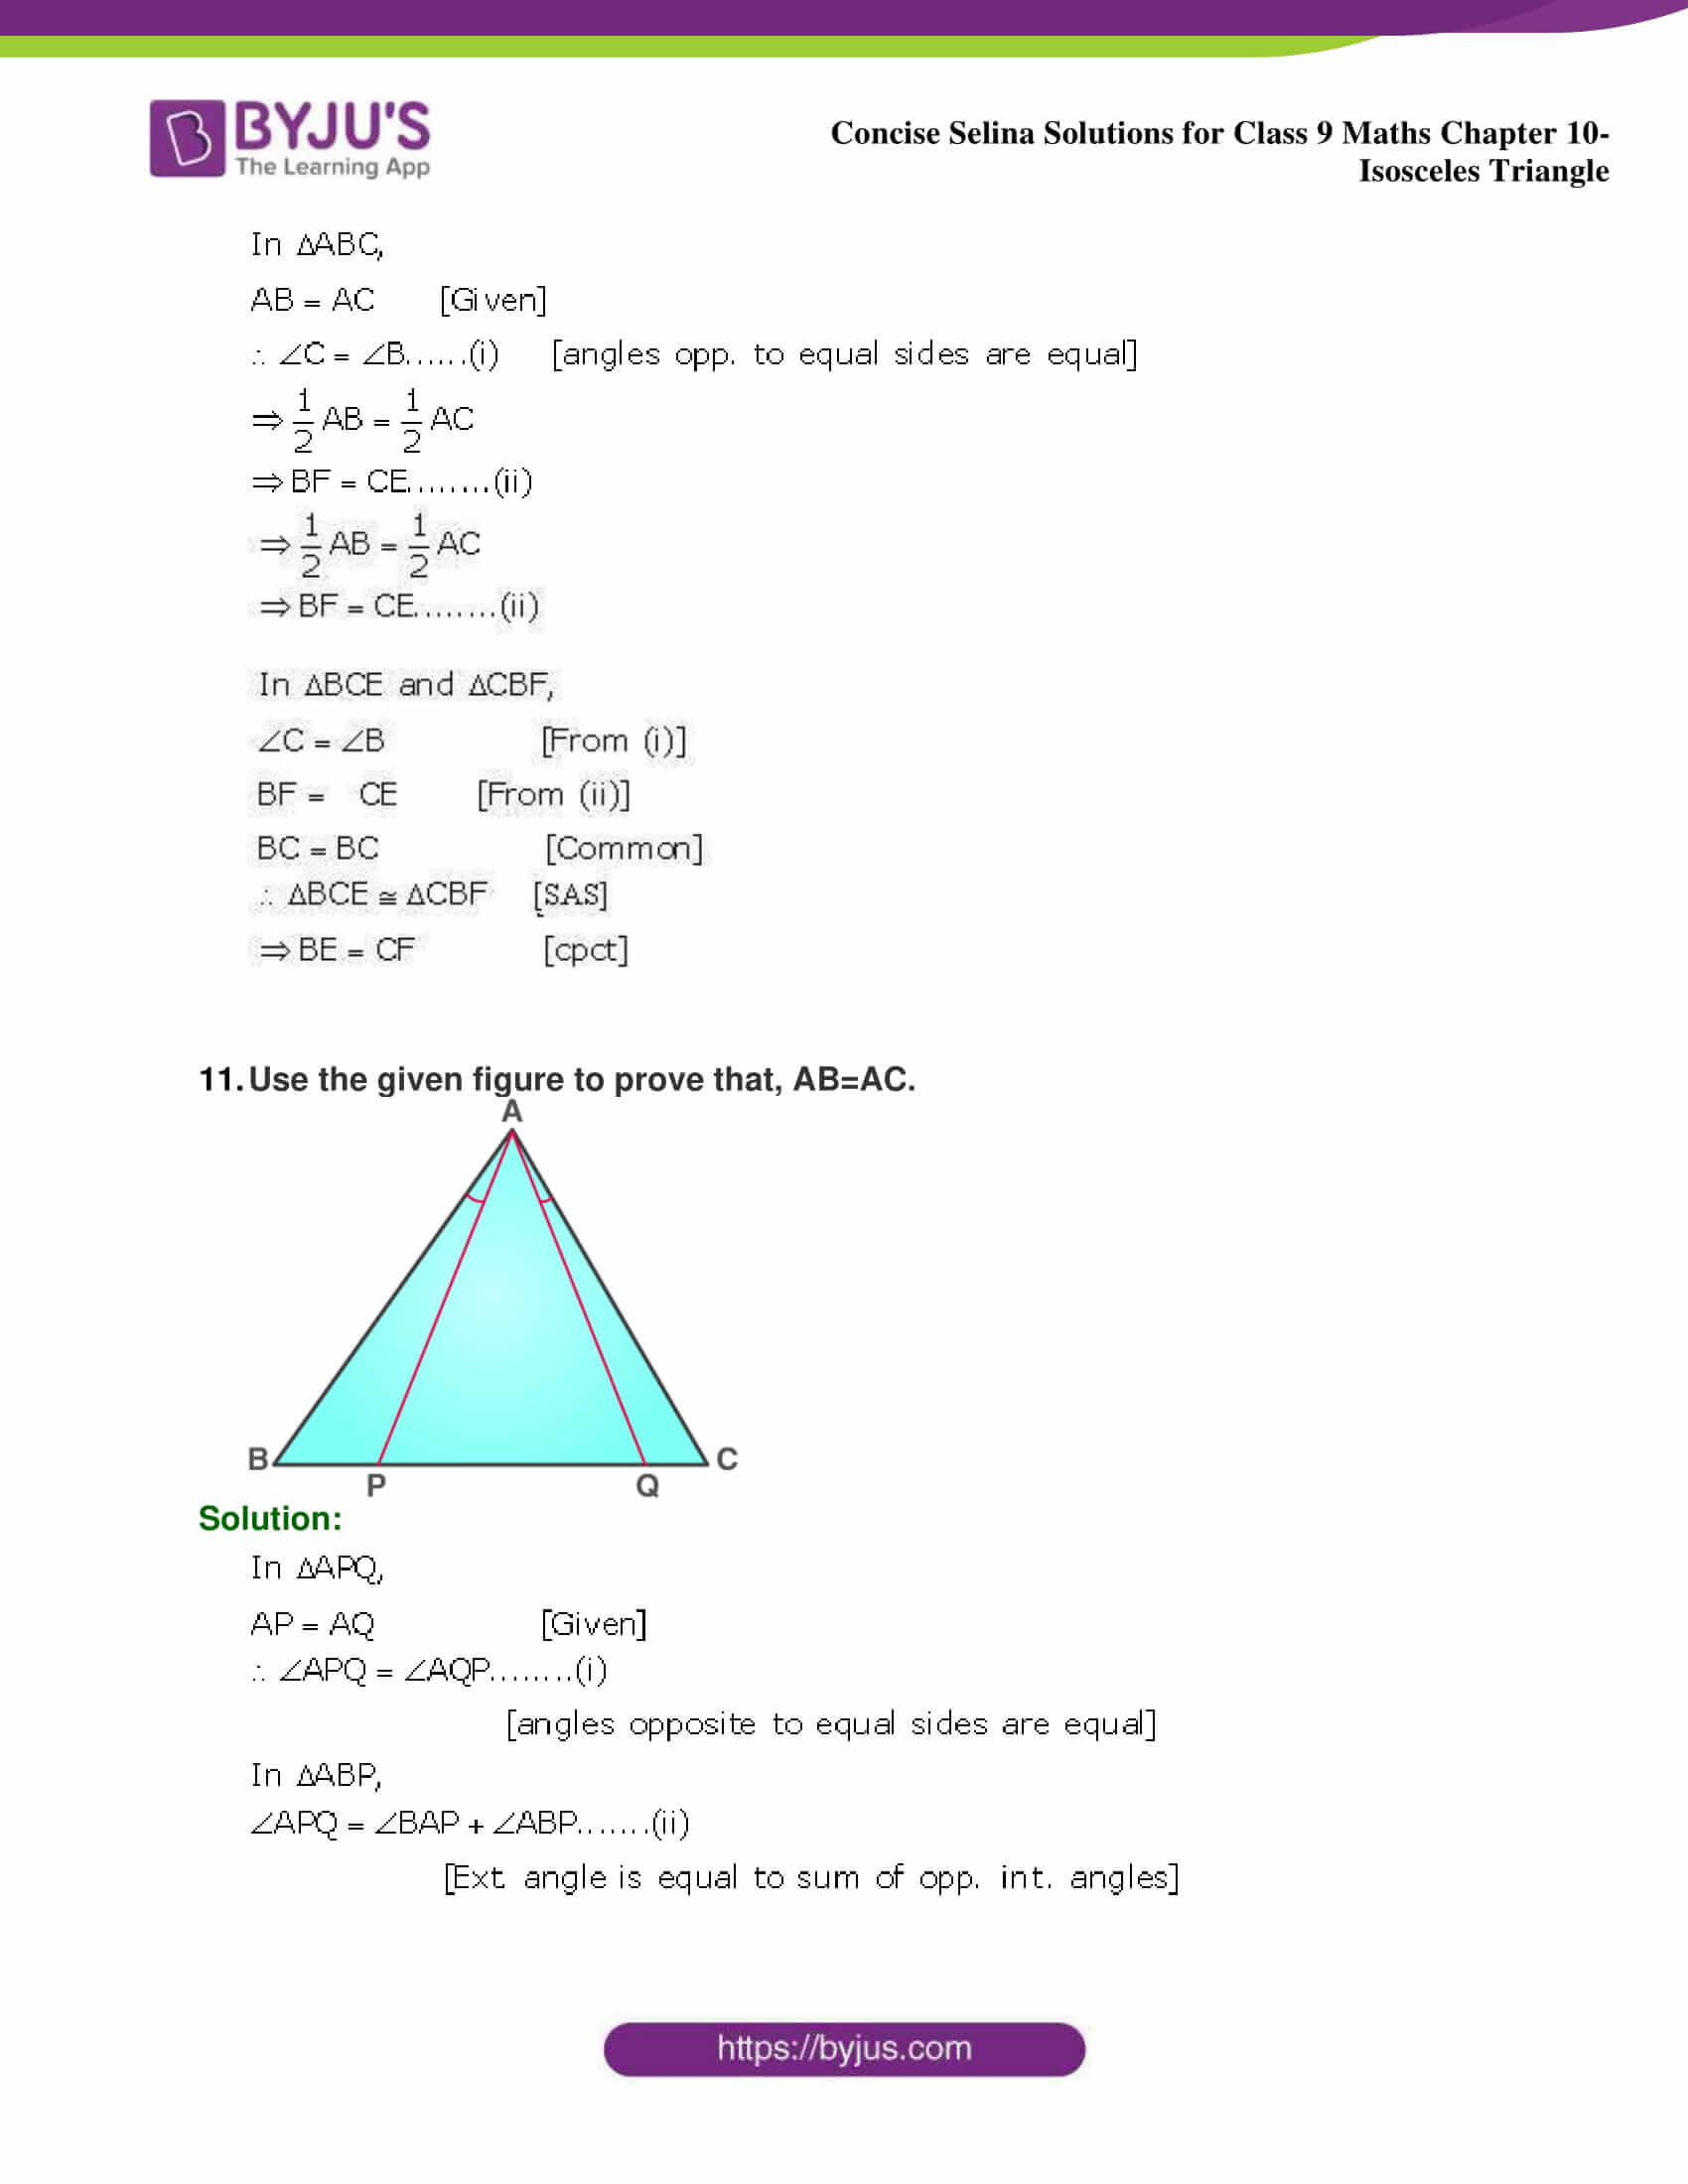 selina Solutions for Class 9 Maths Chapter 10 part 31